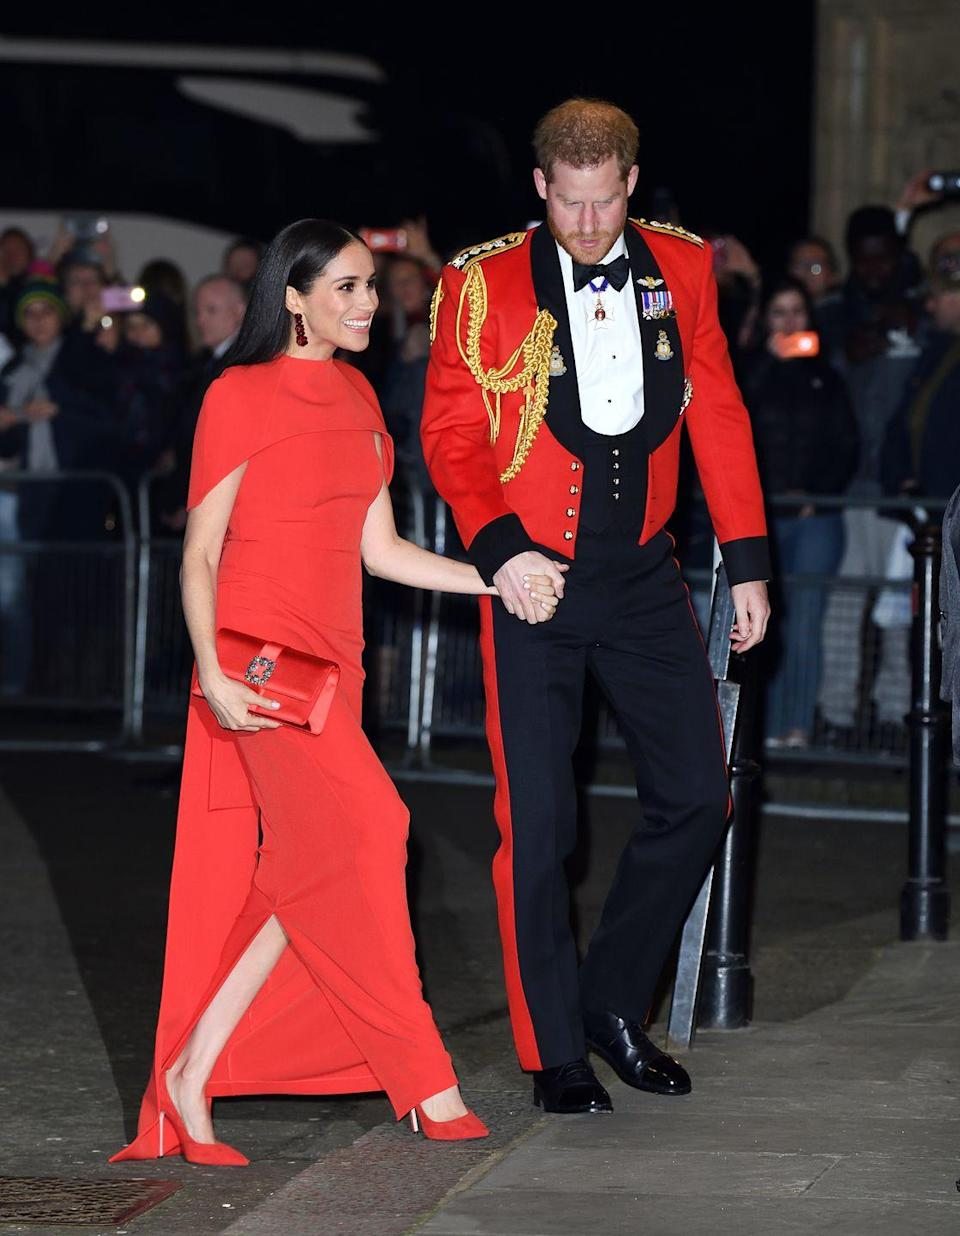 """<p>Prince Harry was seen holding his wife's hand and helping her up the steps of the Albert Hall in London on March 7 as they made their way into the <a href=""""https://www.elle.com/uk/life-and-culture/a31269596/meghan-markle-prince-harry-mountbatten-festival-music/"""" rel=""""nofollow noopener"""" target=""""_blank"""" data-ylk=""""slk:Mountbatten Music Festival"""" class=""""link rapid-noclick-resp"""">Mountbatten Music Festival</a>. </p><p>Meghan wore a beautiful full-length crepe, caped, red dress <a href=""""https://www.safiyaa.com/products/kalika-long-dress"""" rel=""""nofollow noopener"""" target=""""_blank"""" data-ylk=""""slk:by Safiyaa"""" class=""""link rapid-noclick-resp"""">by Safiyaa</a> for the occasion. </p>"""